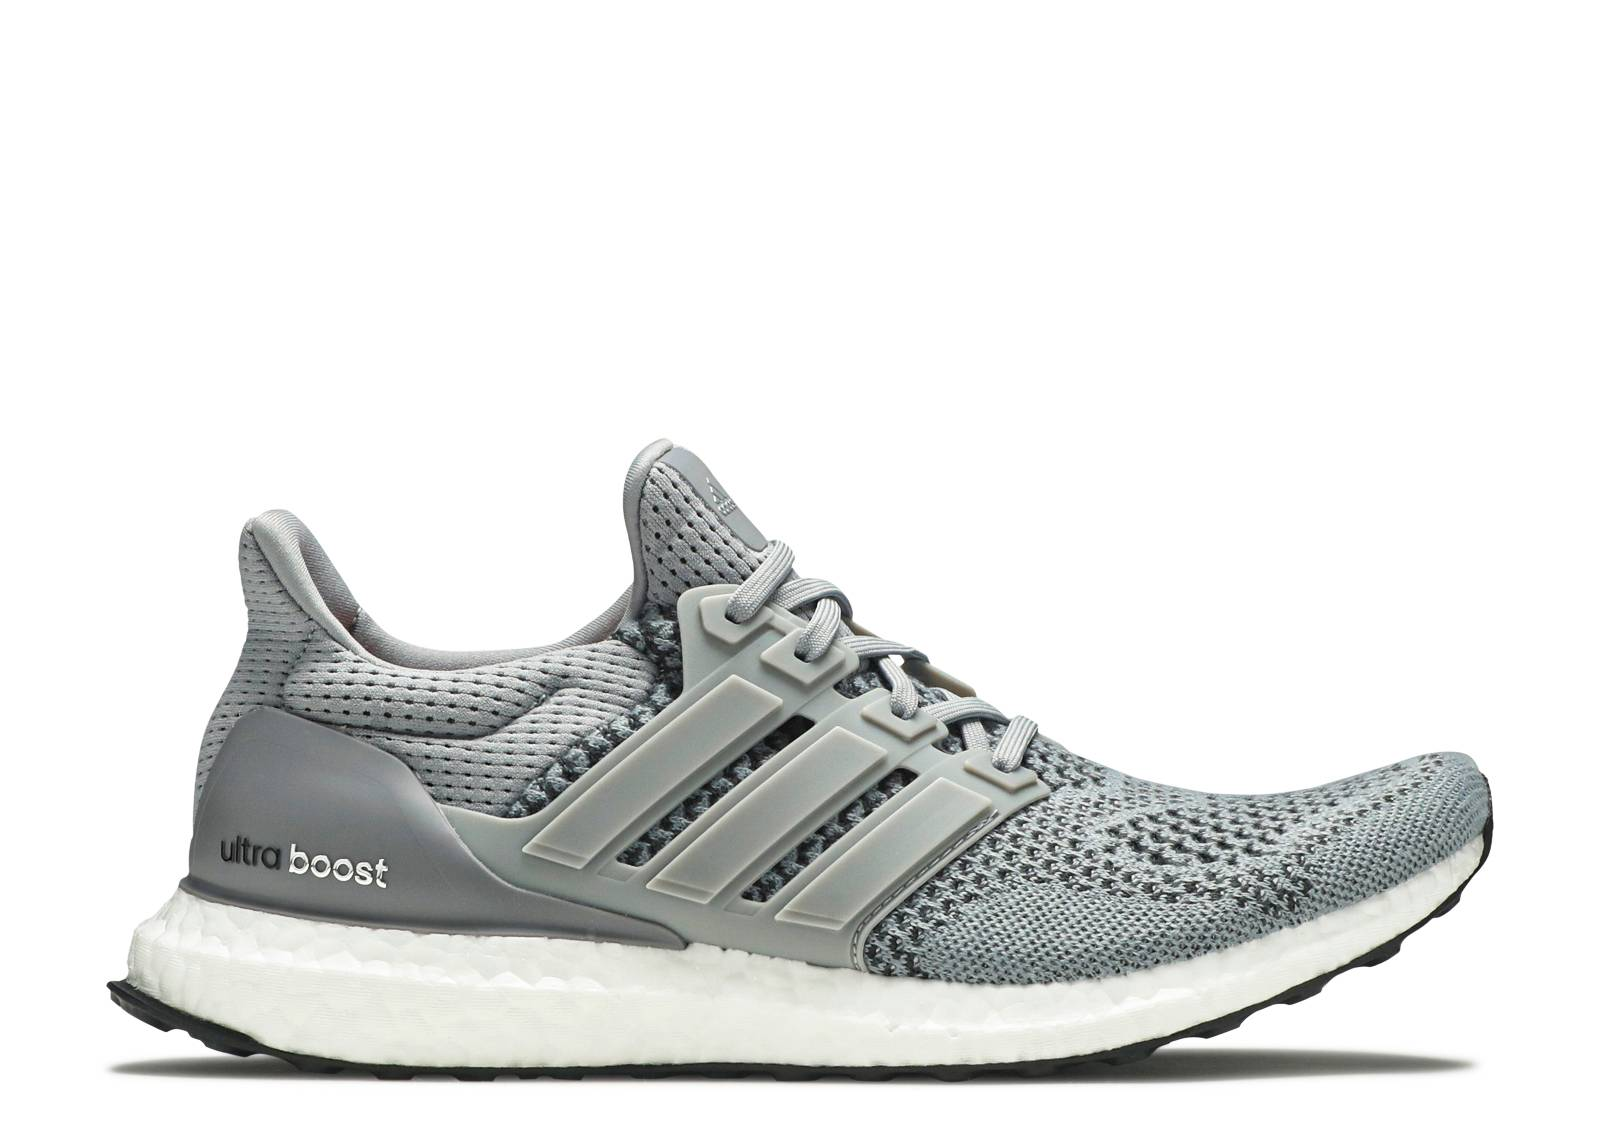 18d5648fc Ultra Boost - Adidas - s77510 - grey white